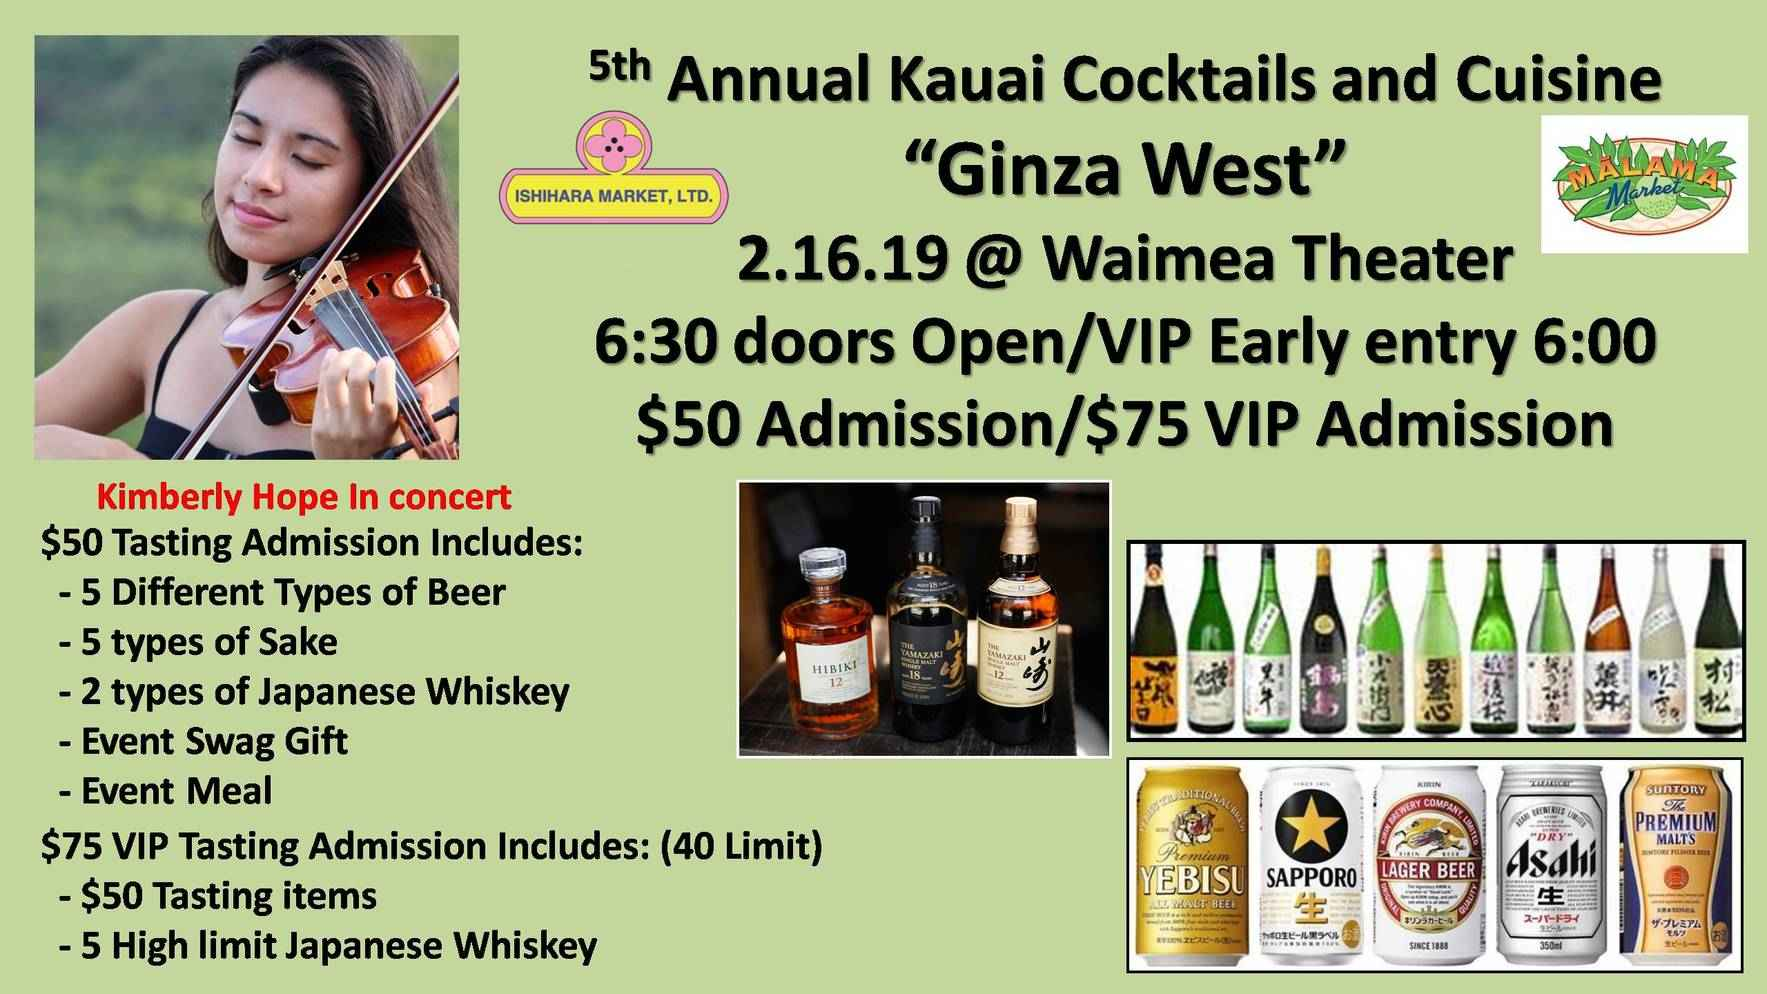 5th Annual Kauai Cokctails and Cuisine image